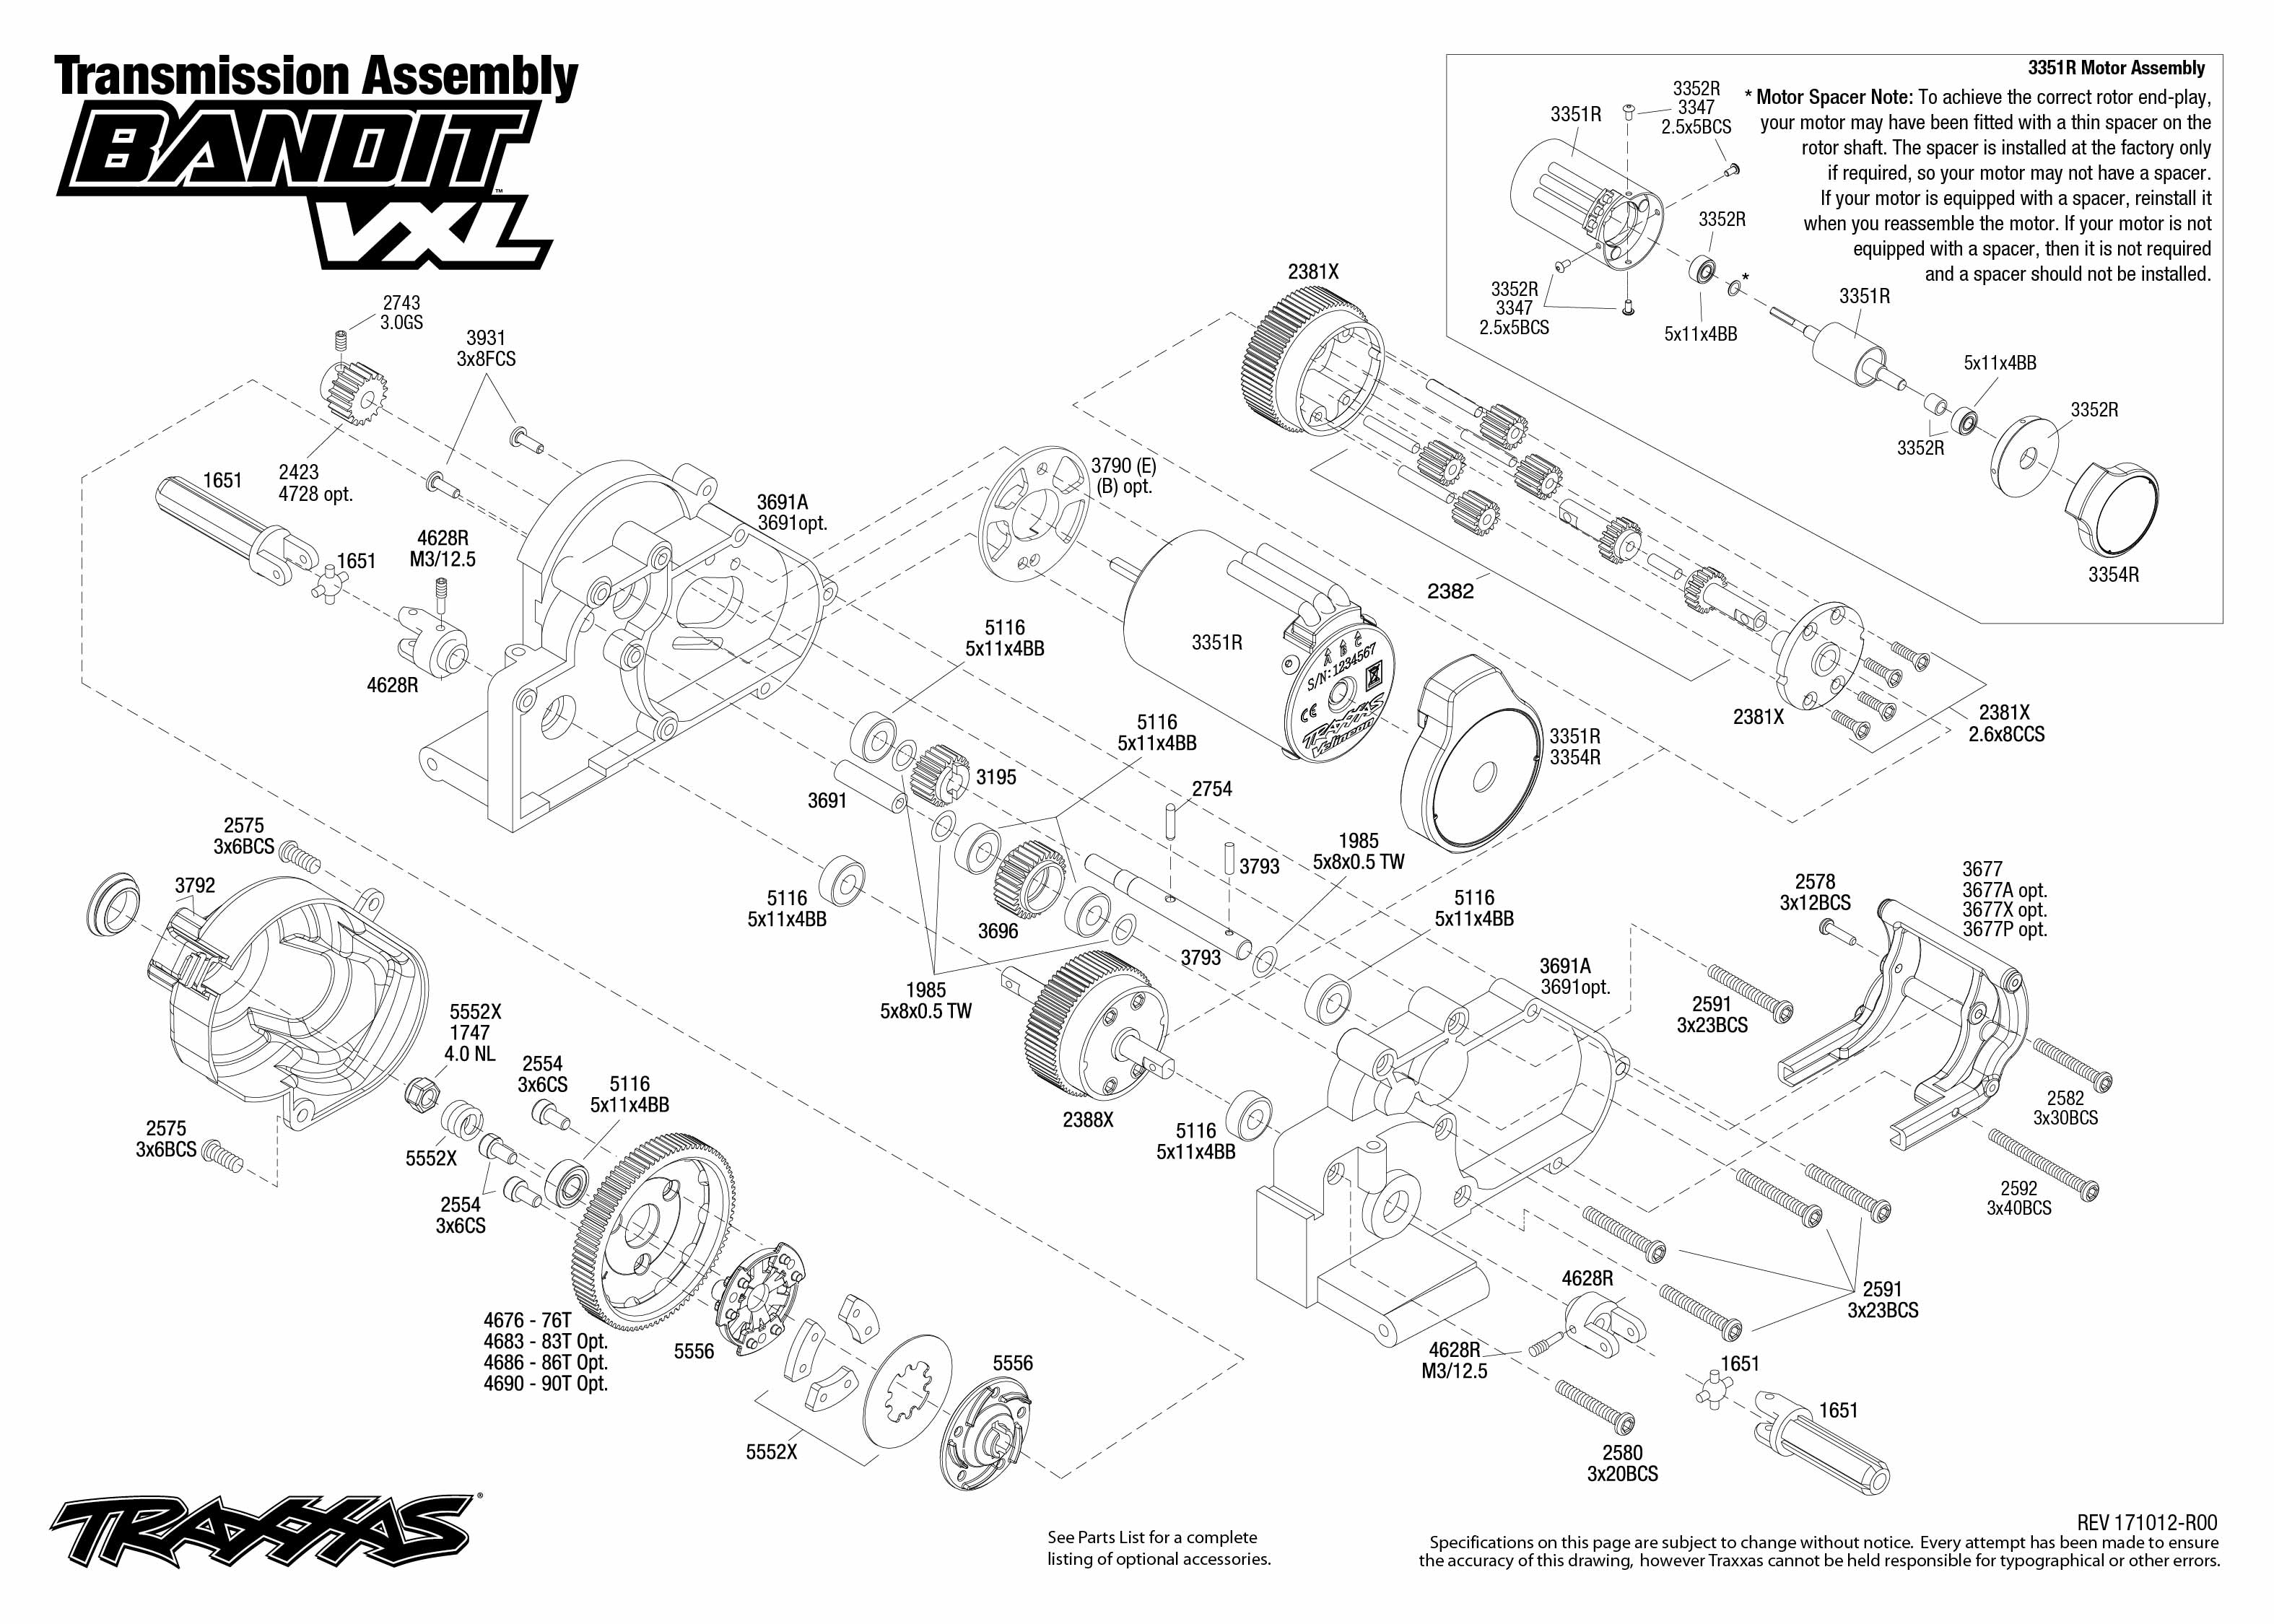 Bandit Vxl 4 Transmission Assembly Exploded View